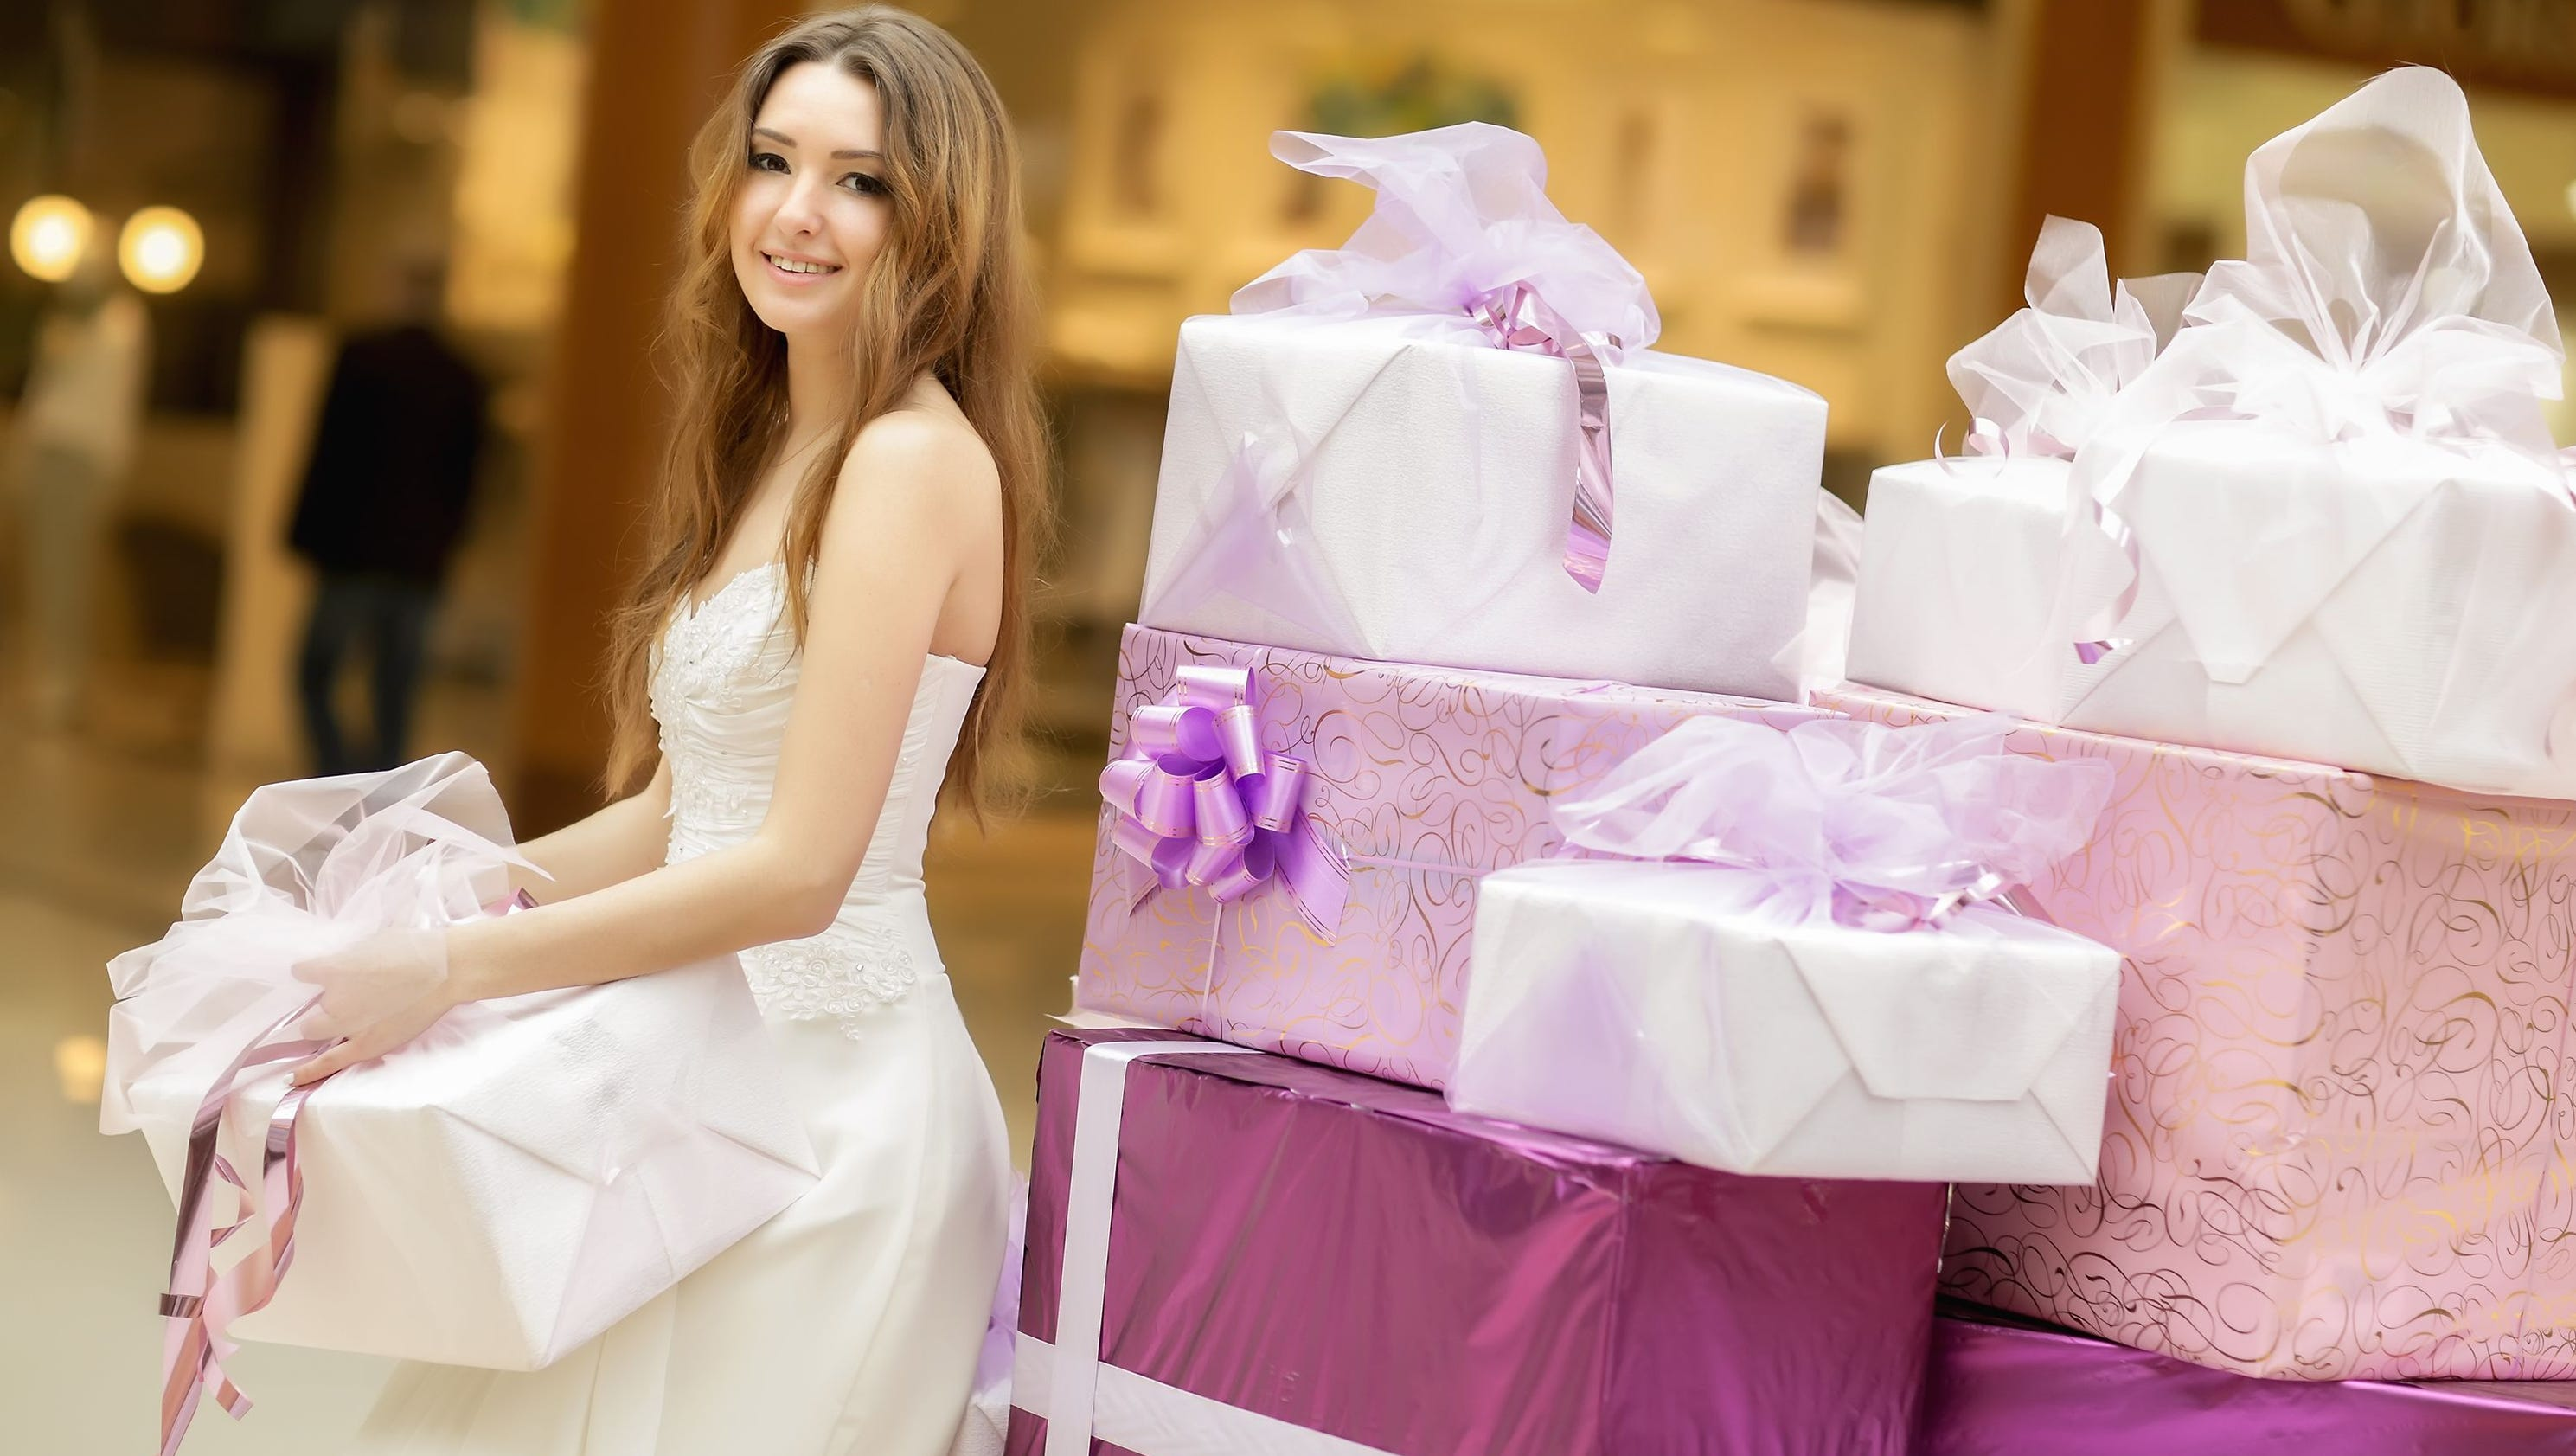 How Much To Give As Wedding Gift Cash: Weddings: What To Give, What Not To Give And How Much To Spend